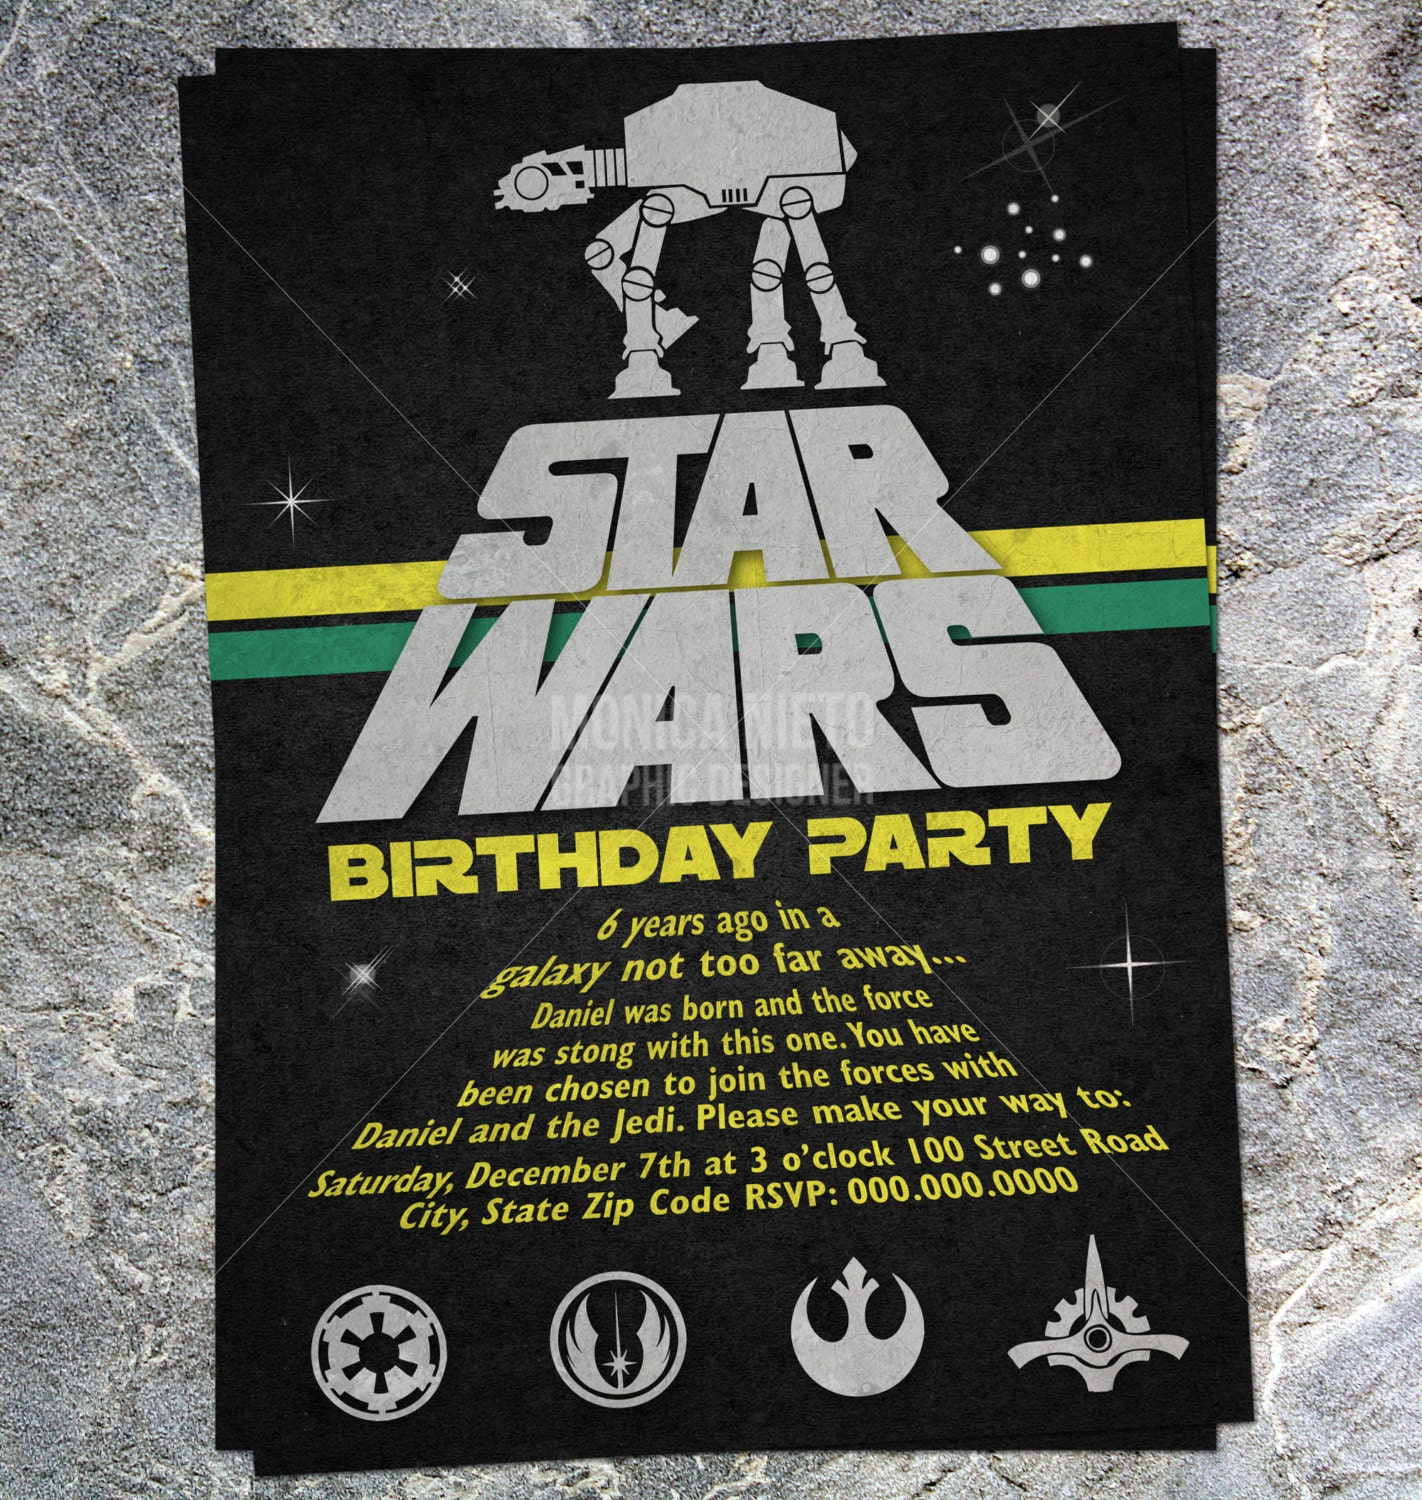 It's just a photo of Slobbery Printable Star Wars Birthday Invitations